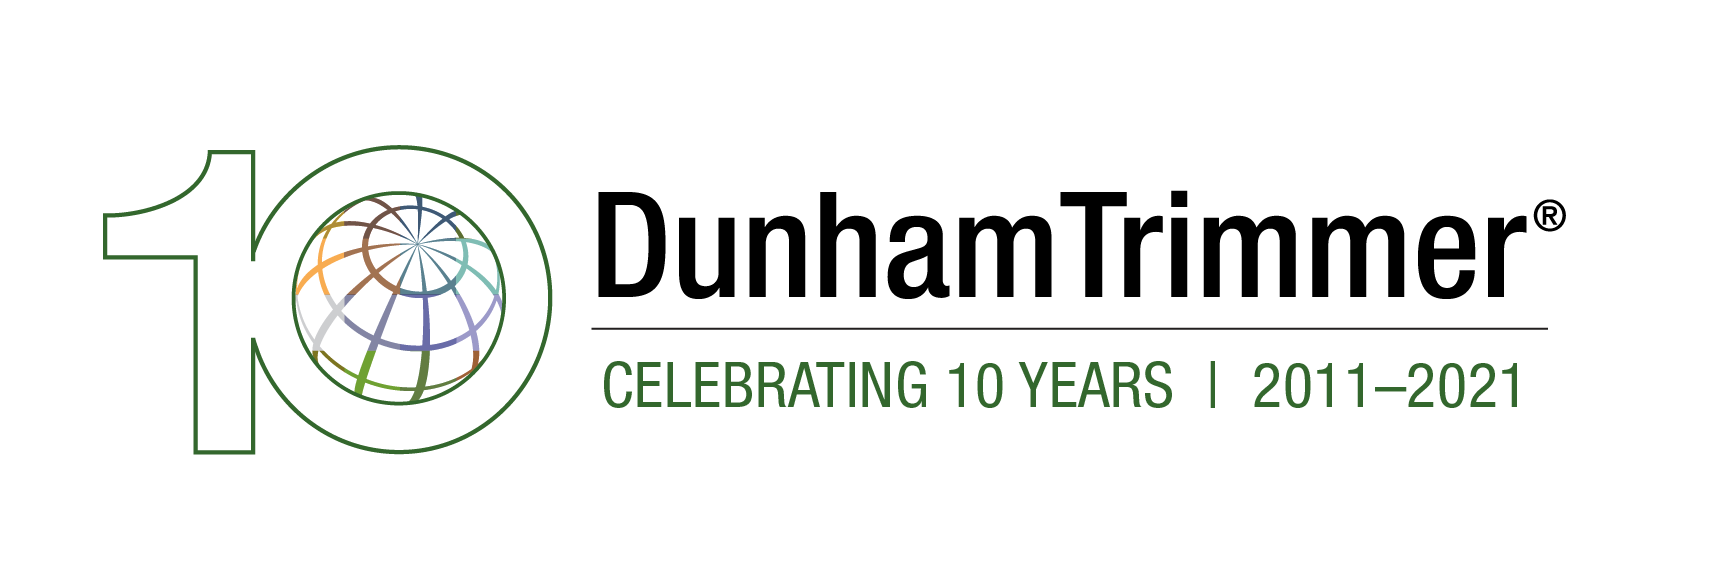 Dunham Trimmer